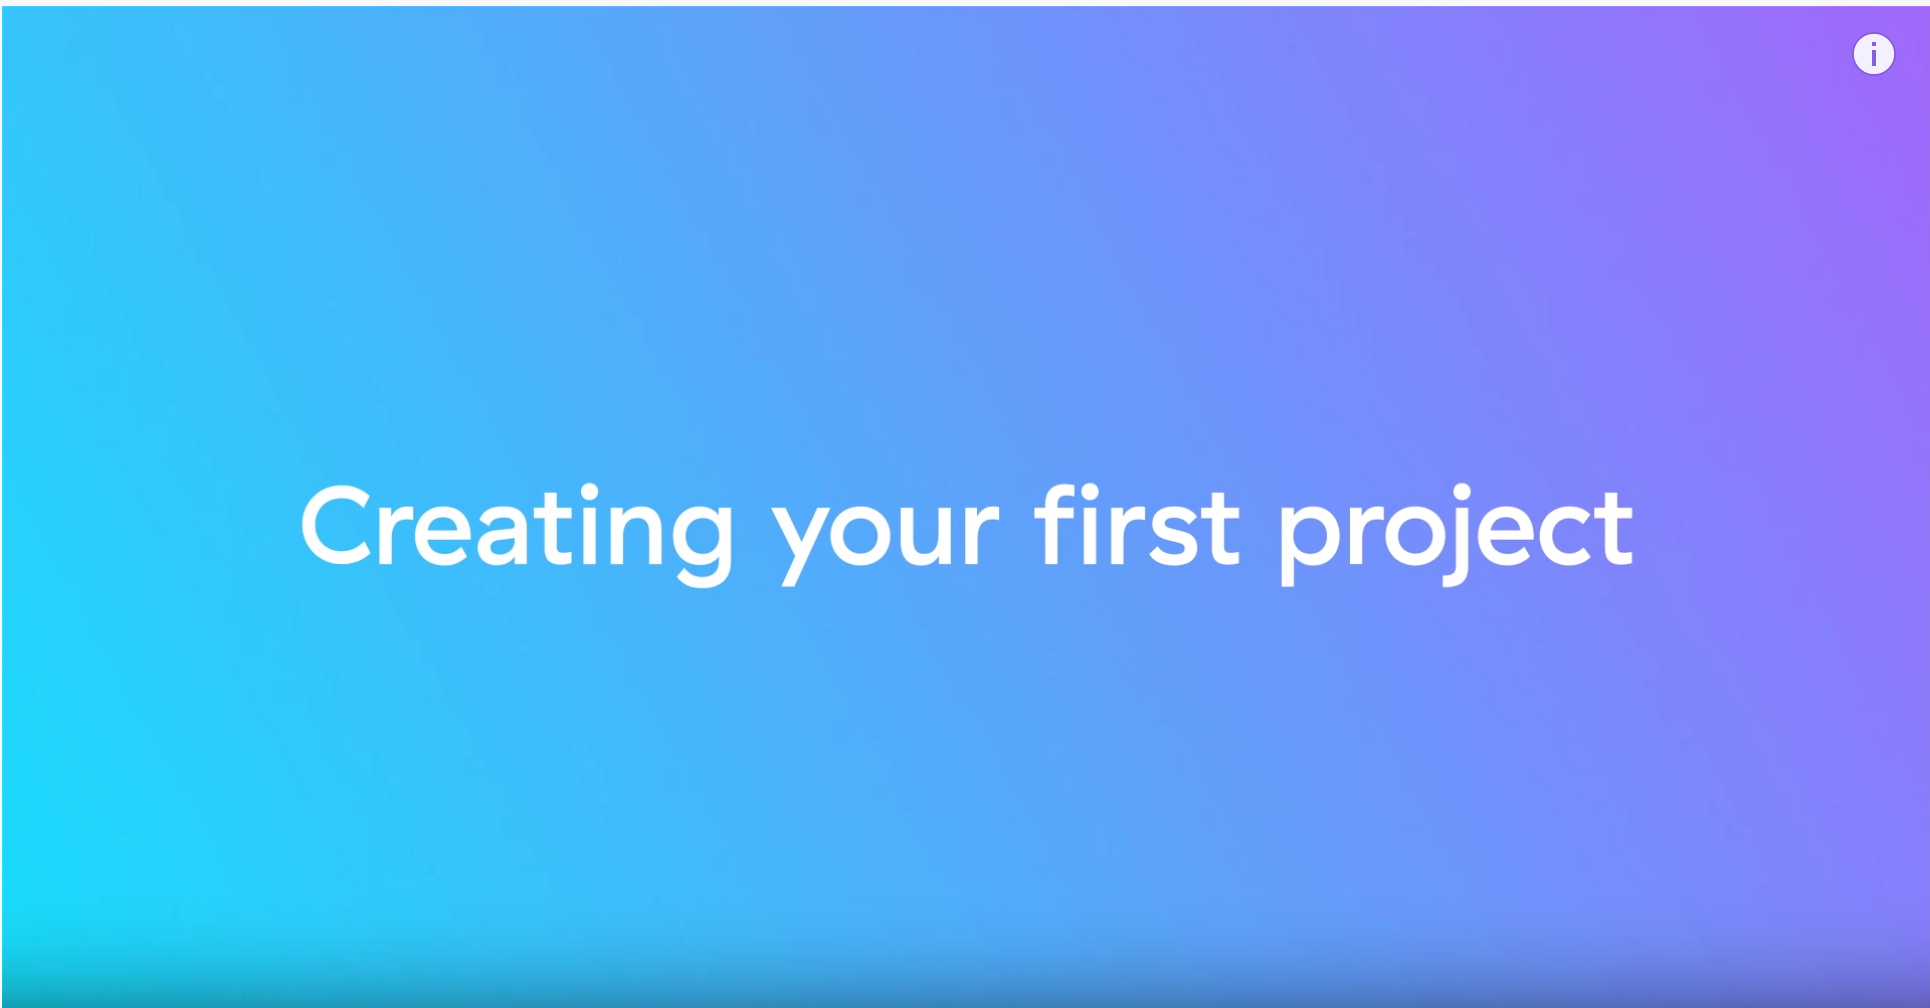 Creating your first Asana project